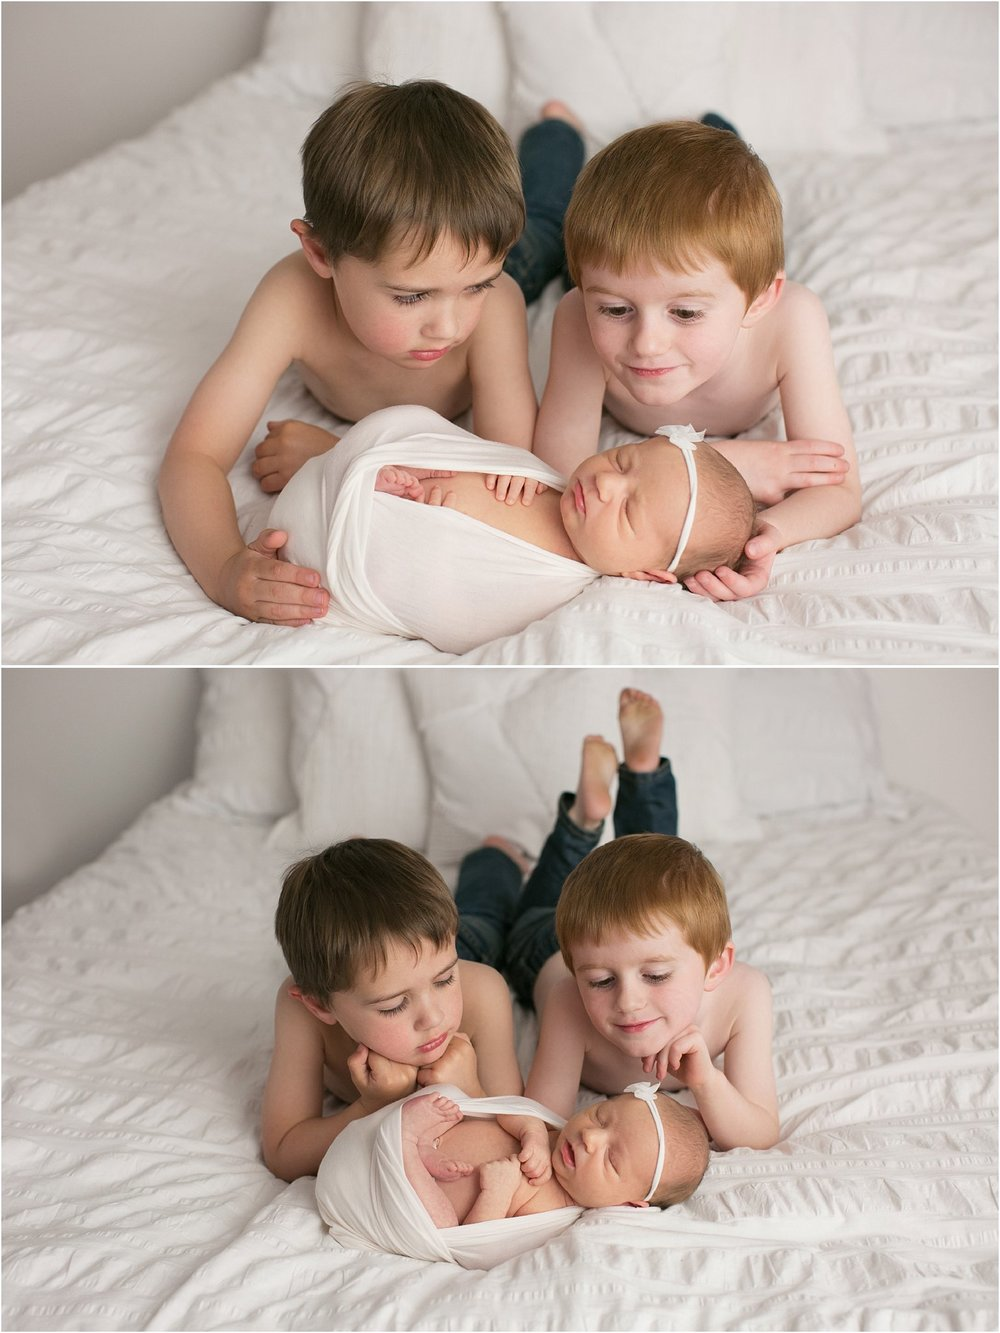 twin brothers holding their new baby sister laying on a white bed